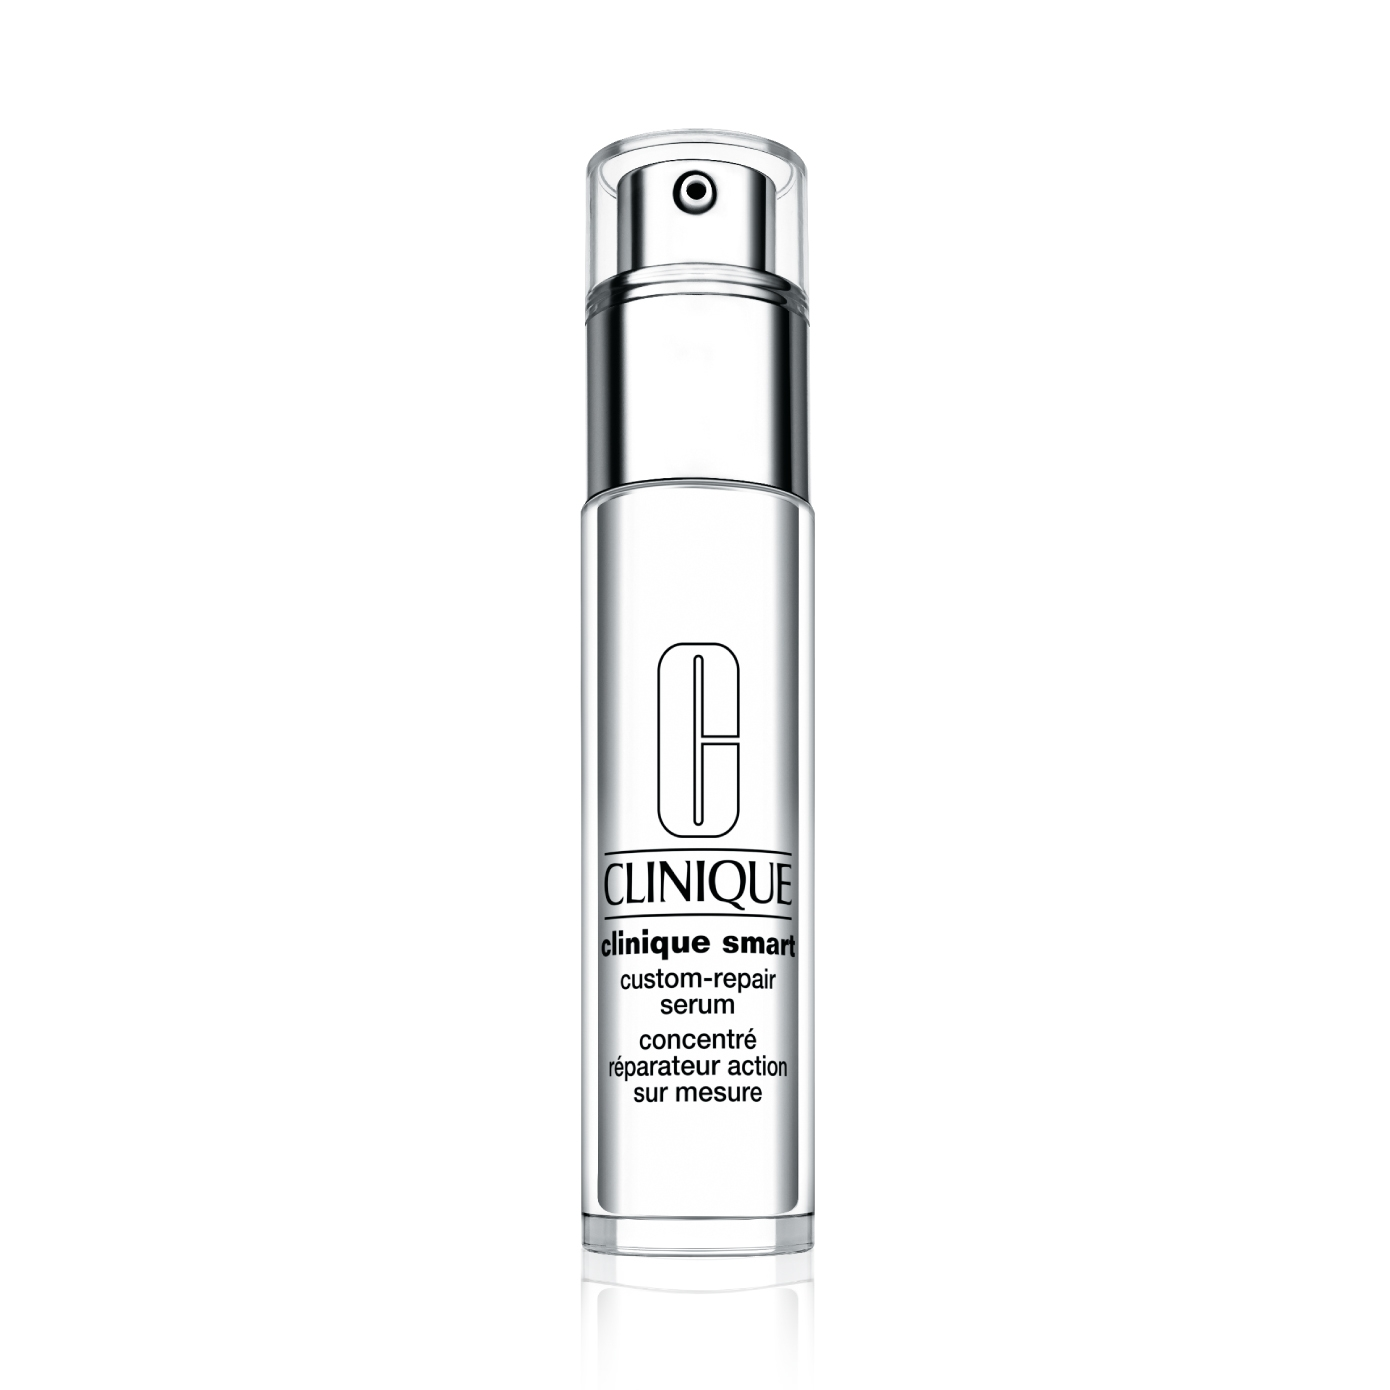 Clinique Repair Smart Serum